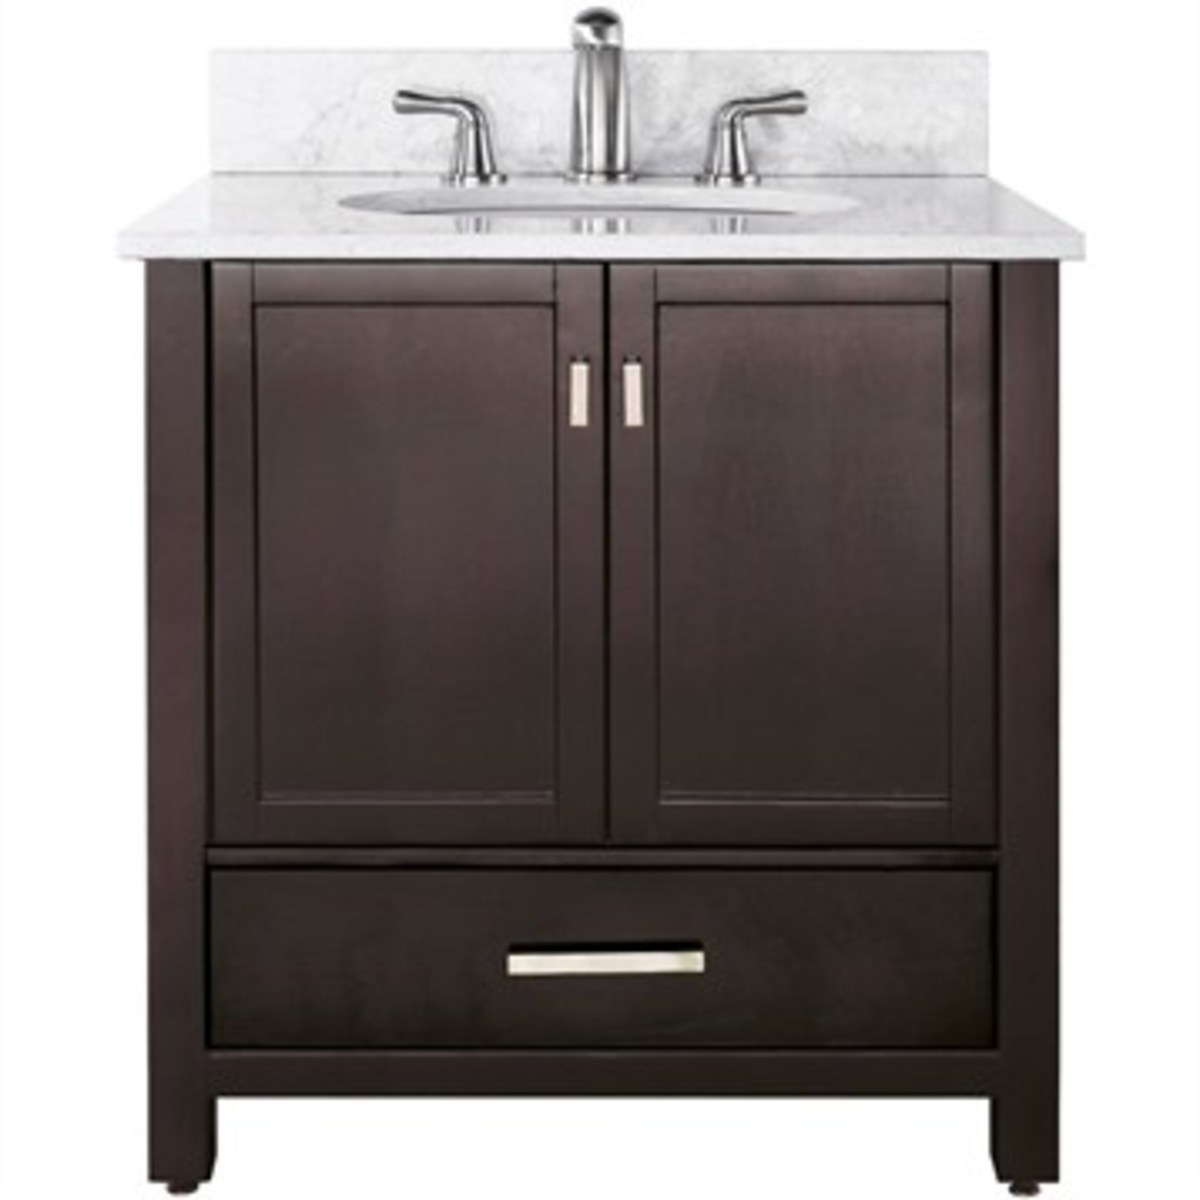 This look-alike vanity by Avanity comes in lower than mall store vanity prices and gives you great quality and style.